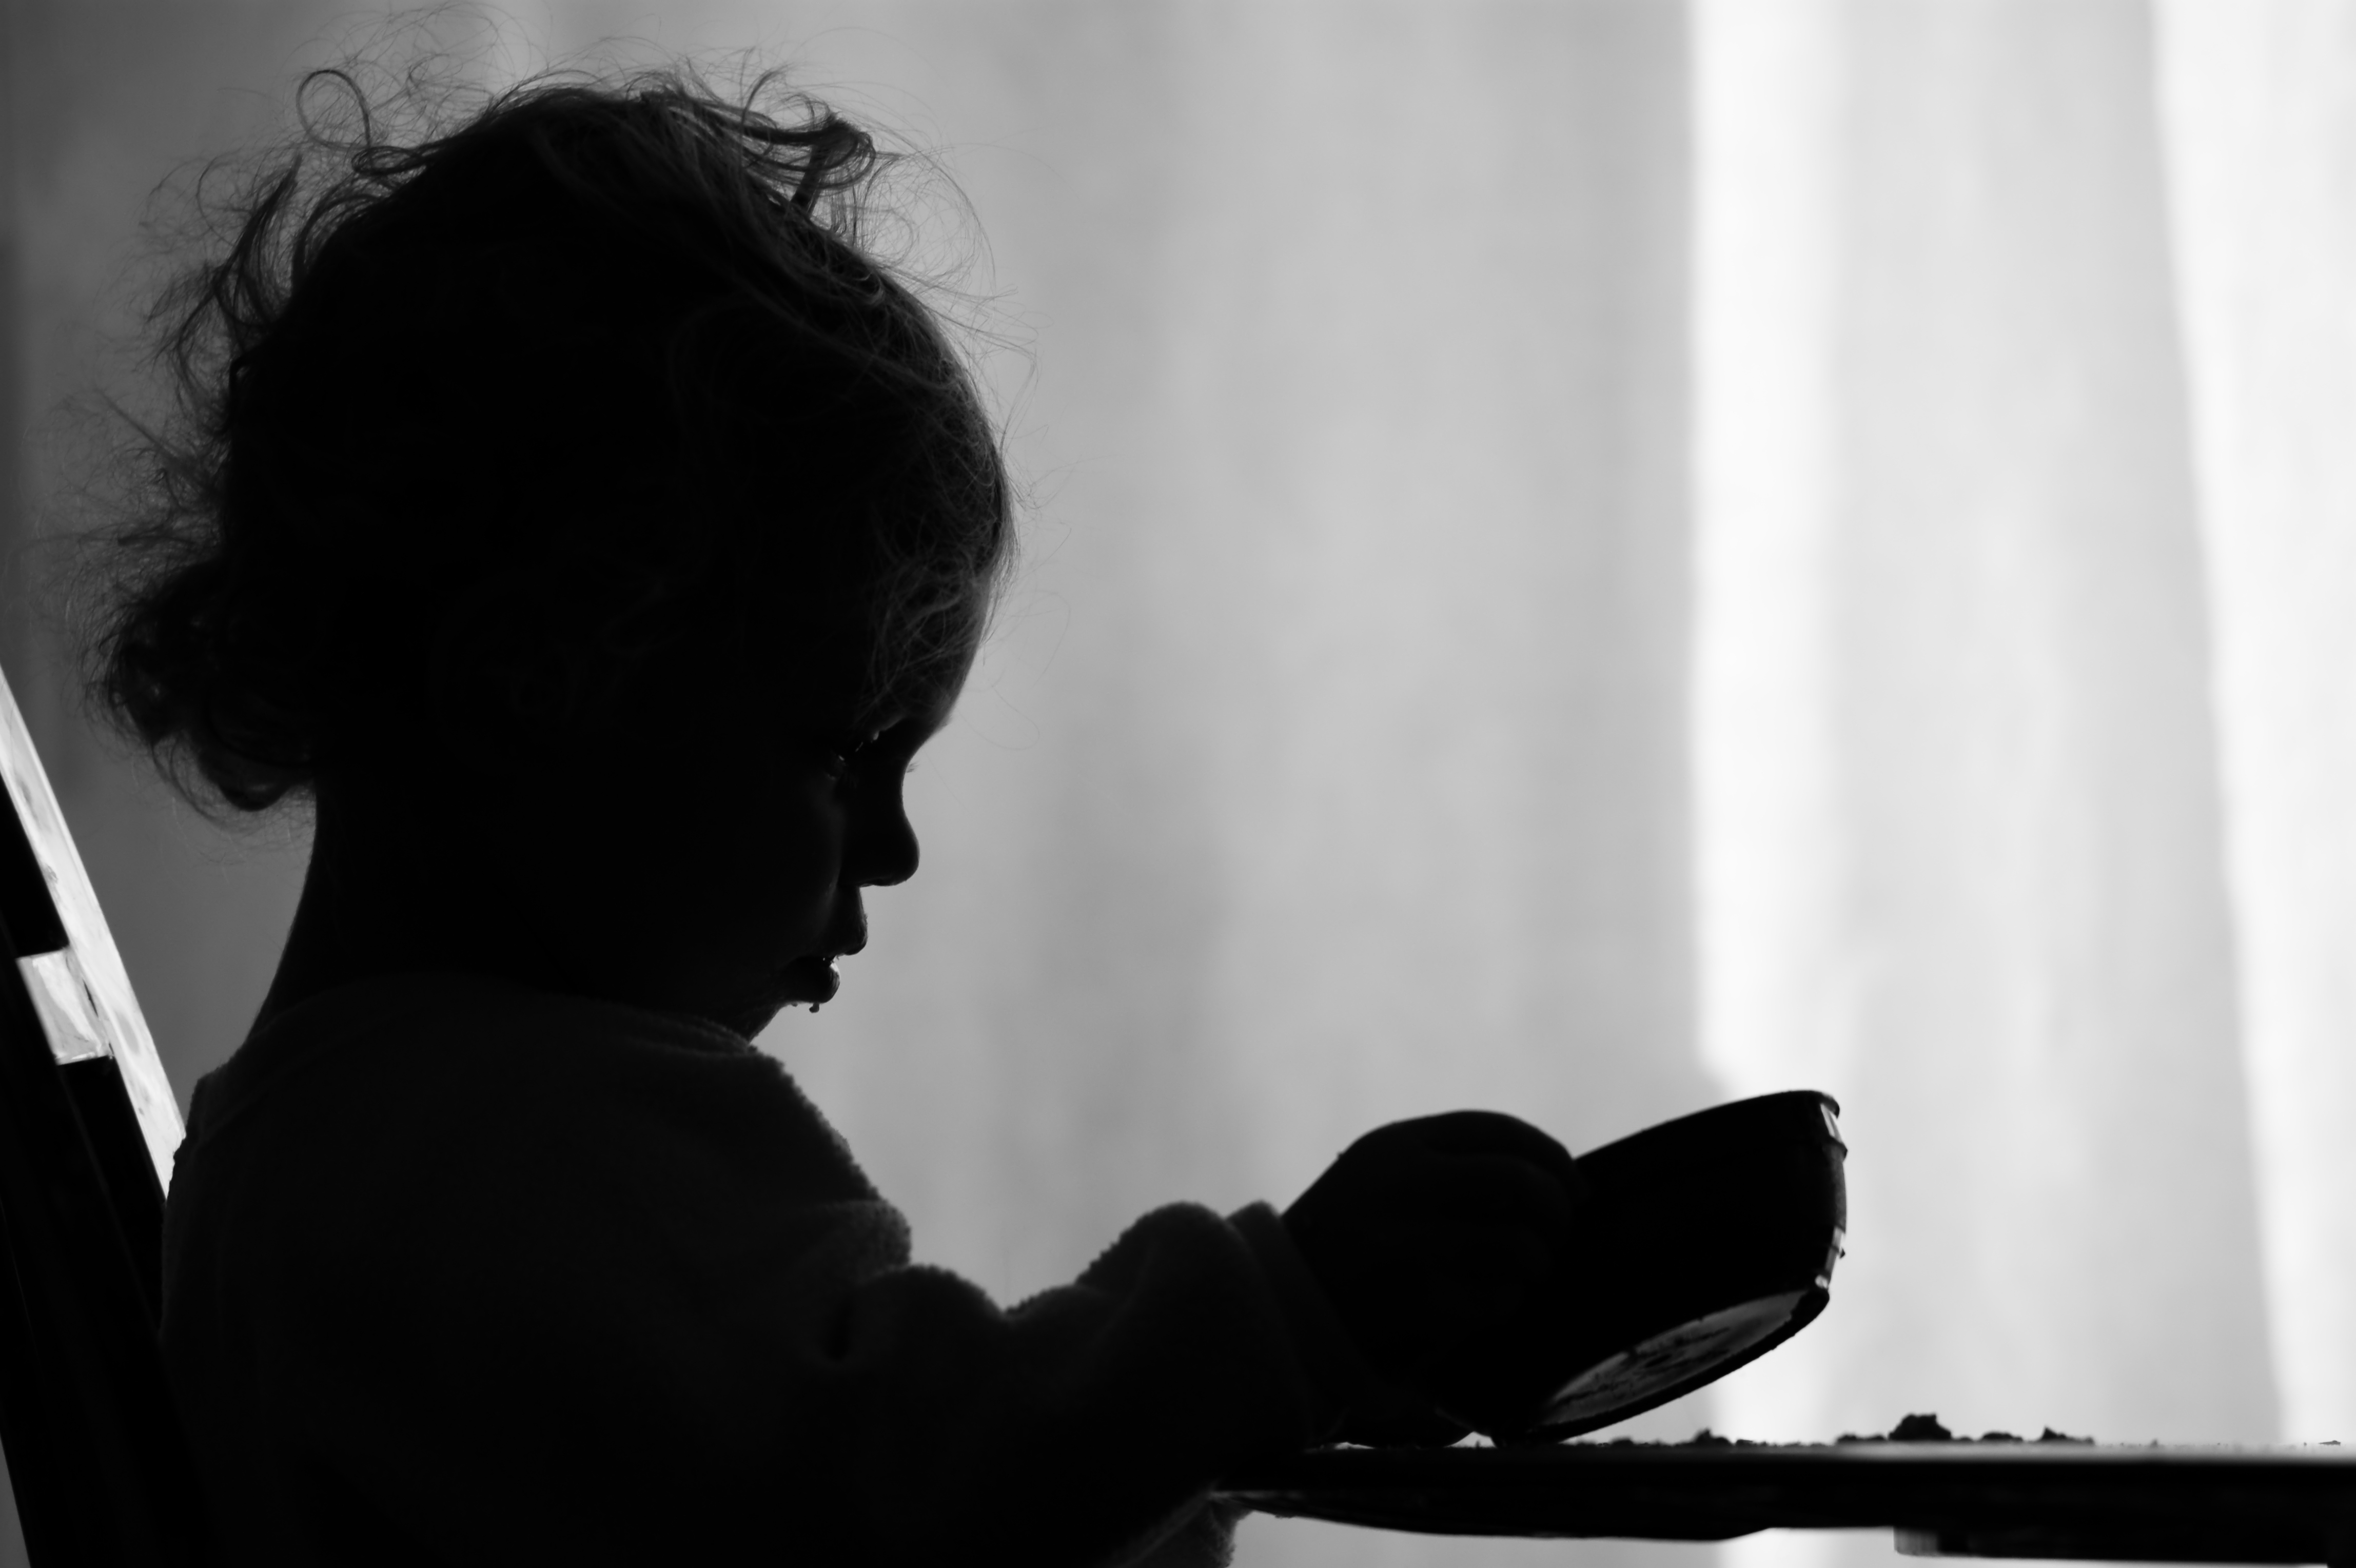 Child neglect linked to parental unemployment